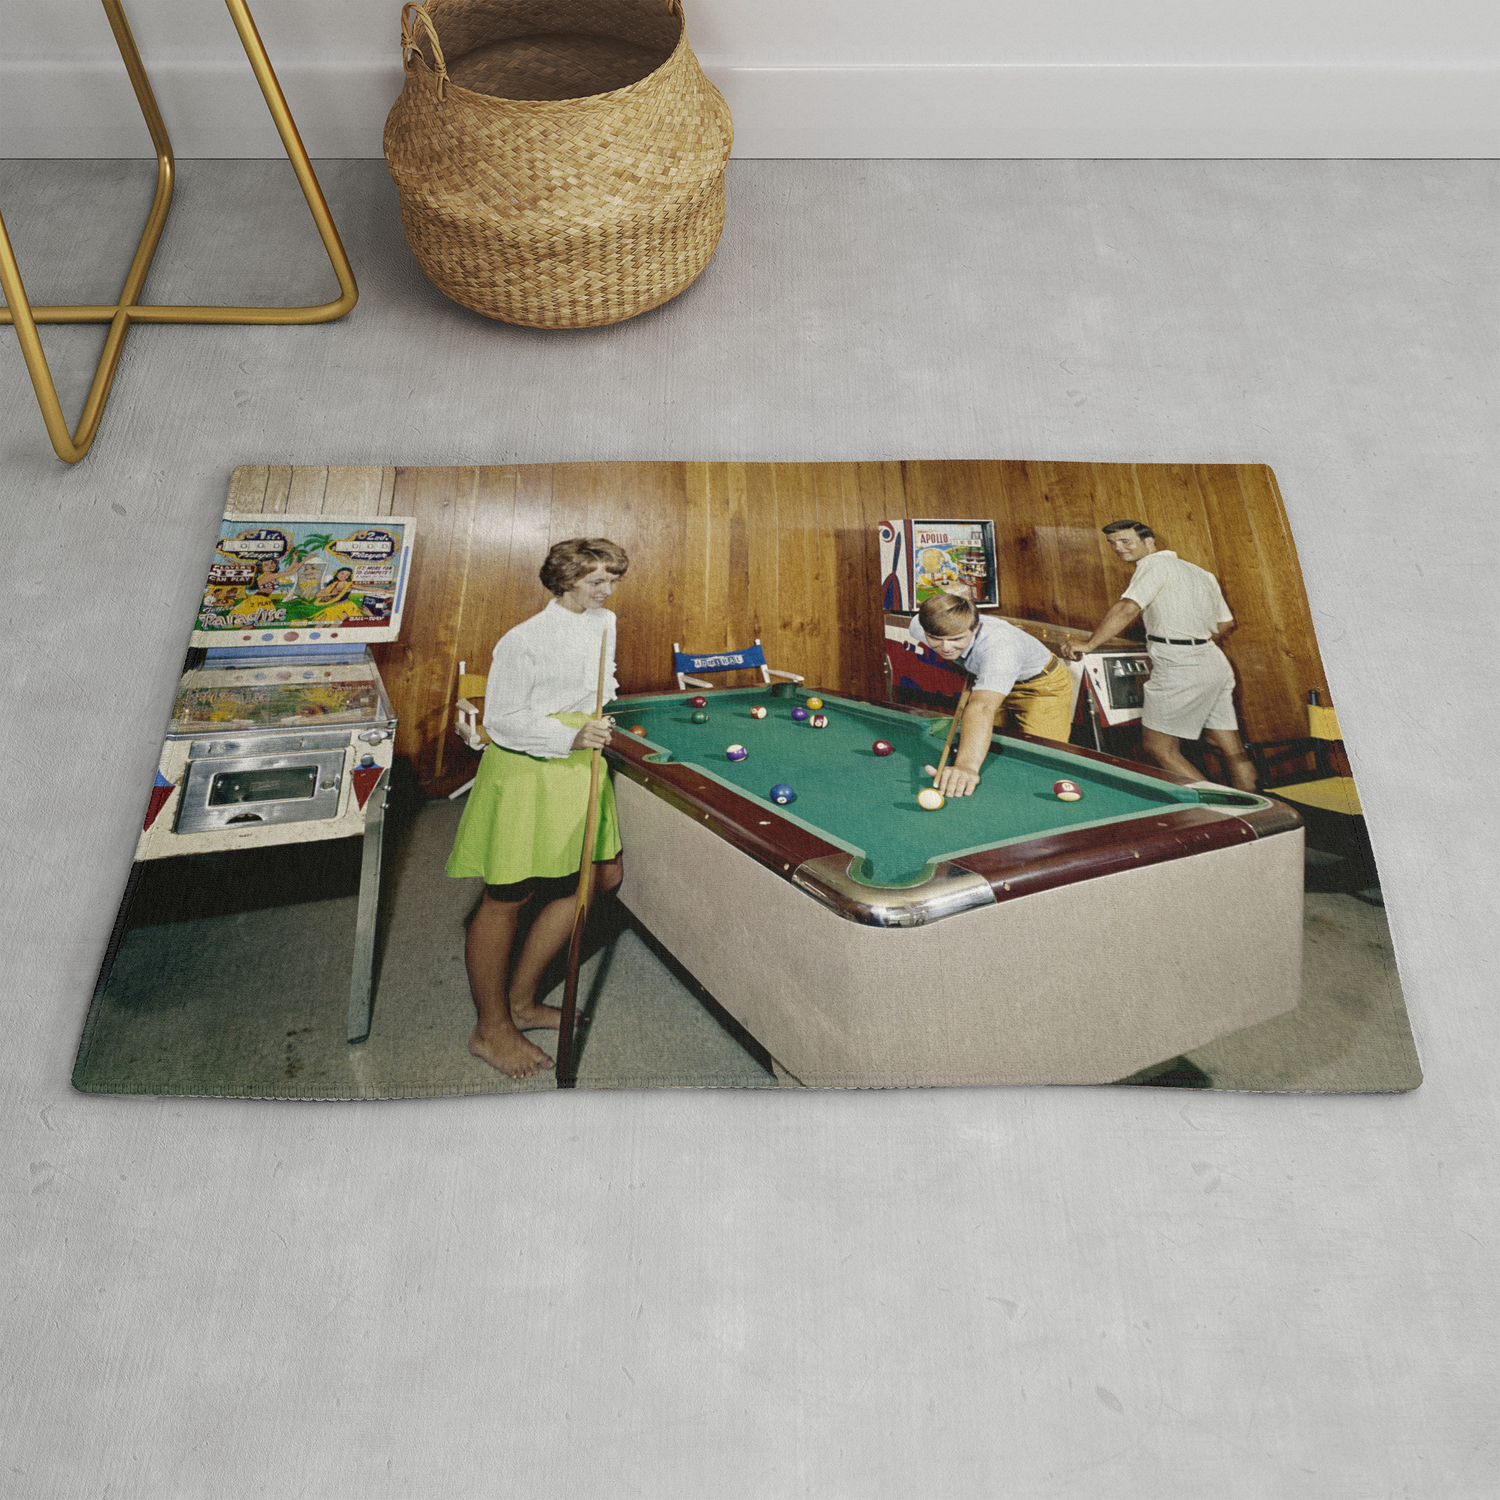 Room With Pinball And A Pool Table